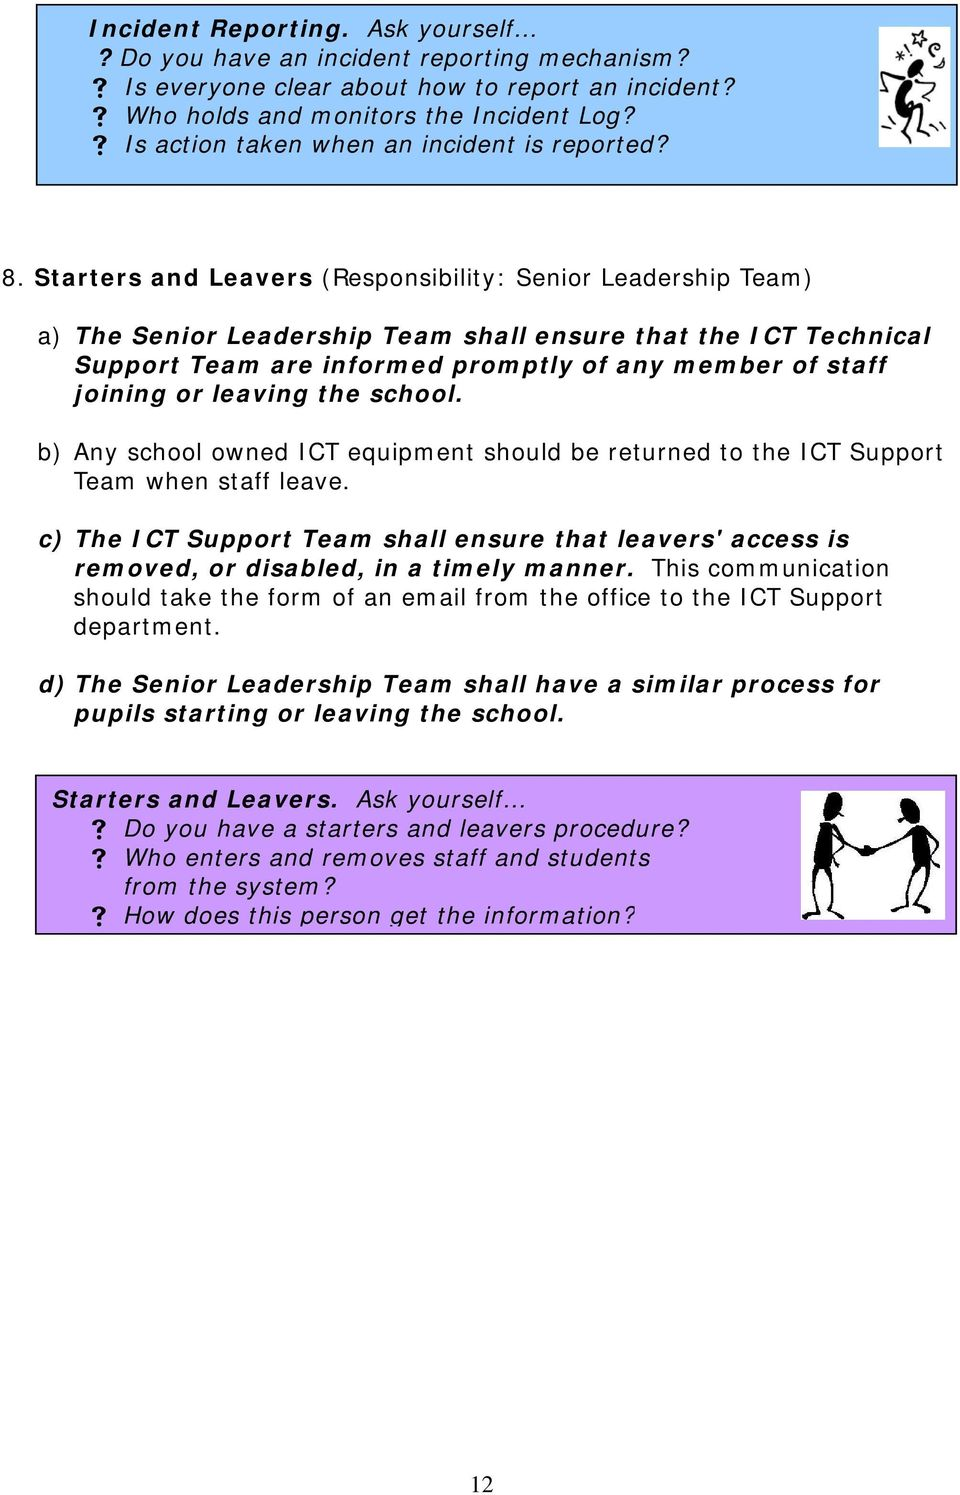 Starters and Leavers (Responsibility: Senior Leadership Team) a) The Senior Leadership Team shall ensure that the ICT Technical Support Team are informed promptly of any member of staff joining or